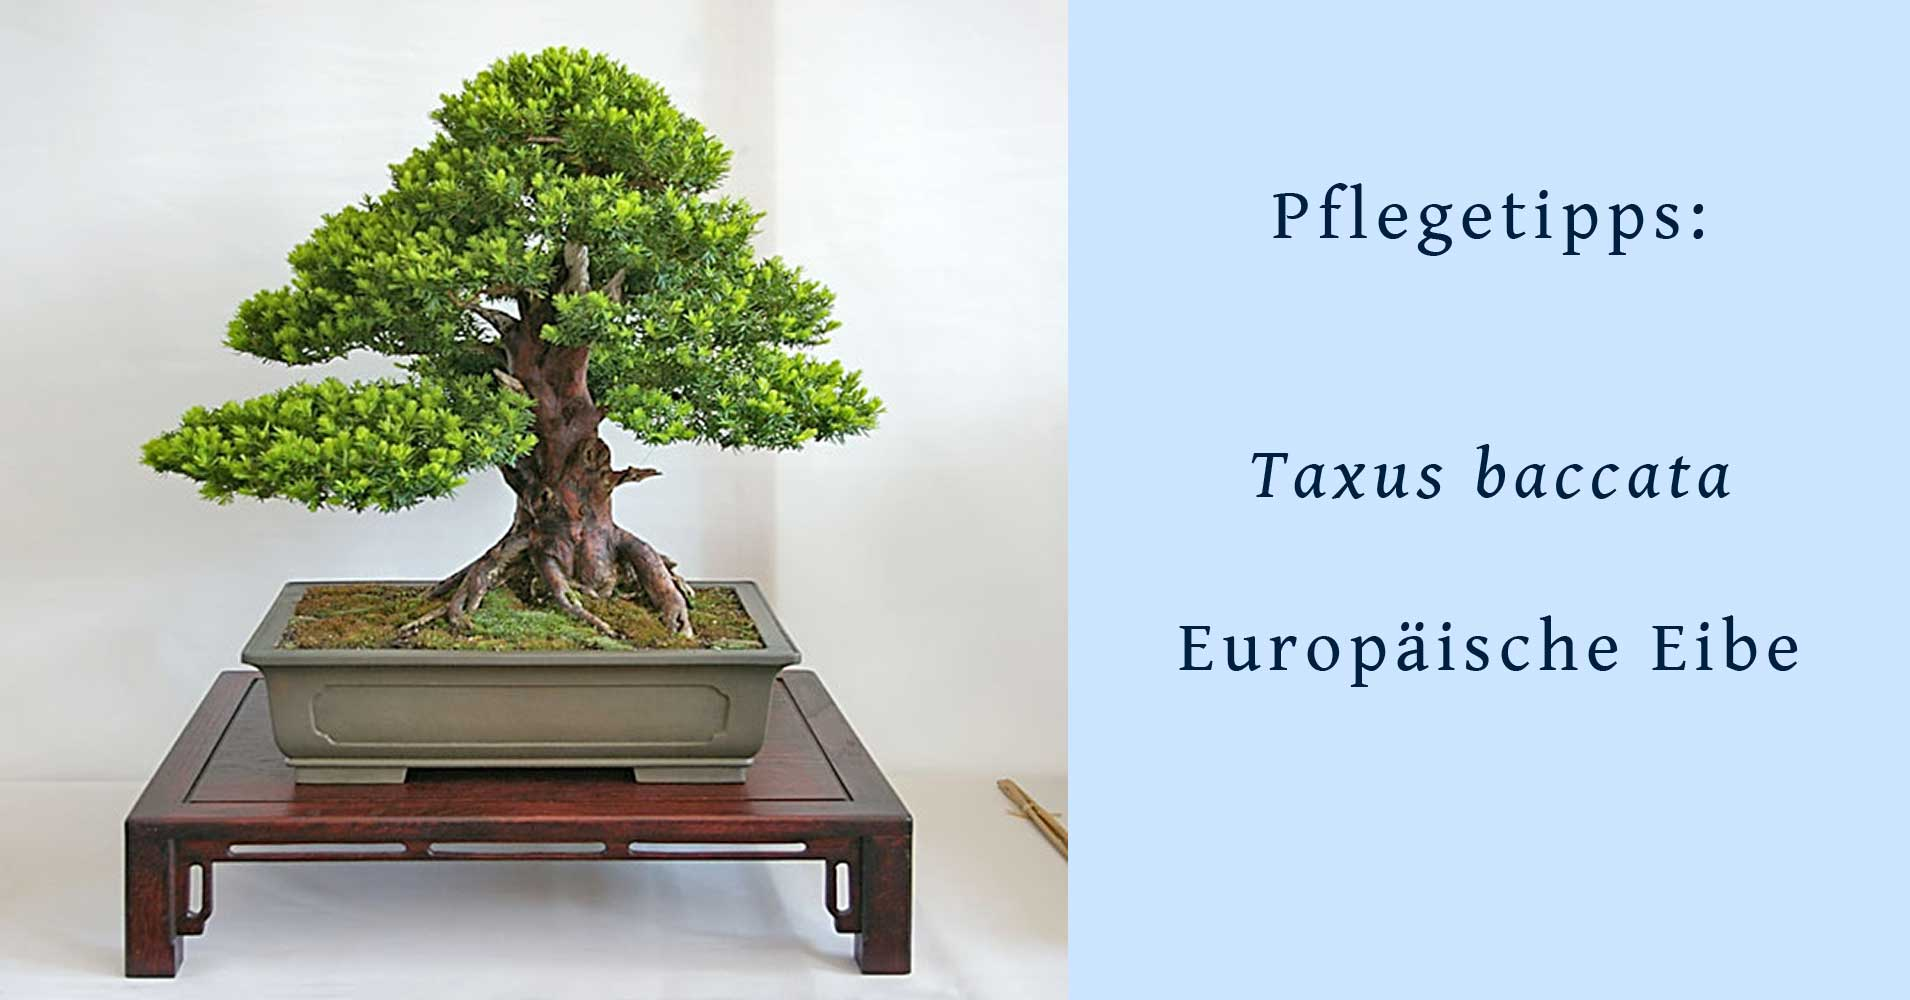 taxus baccata gemeine eibe als bonsai gestalten und pflegen. Black Bedroom Furniture Sets. Home Design Ideas